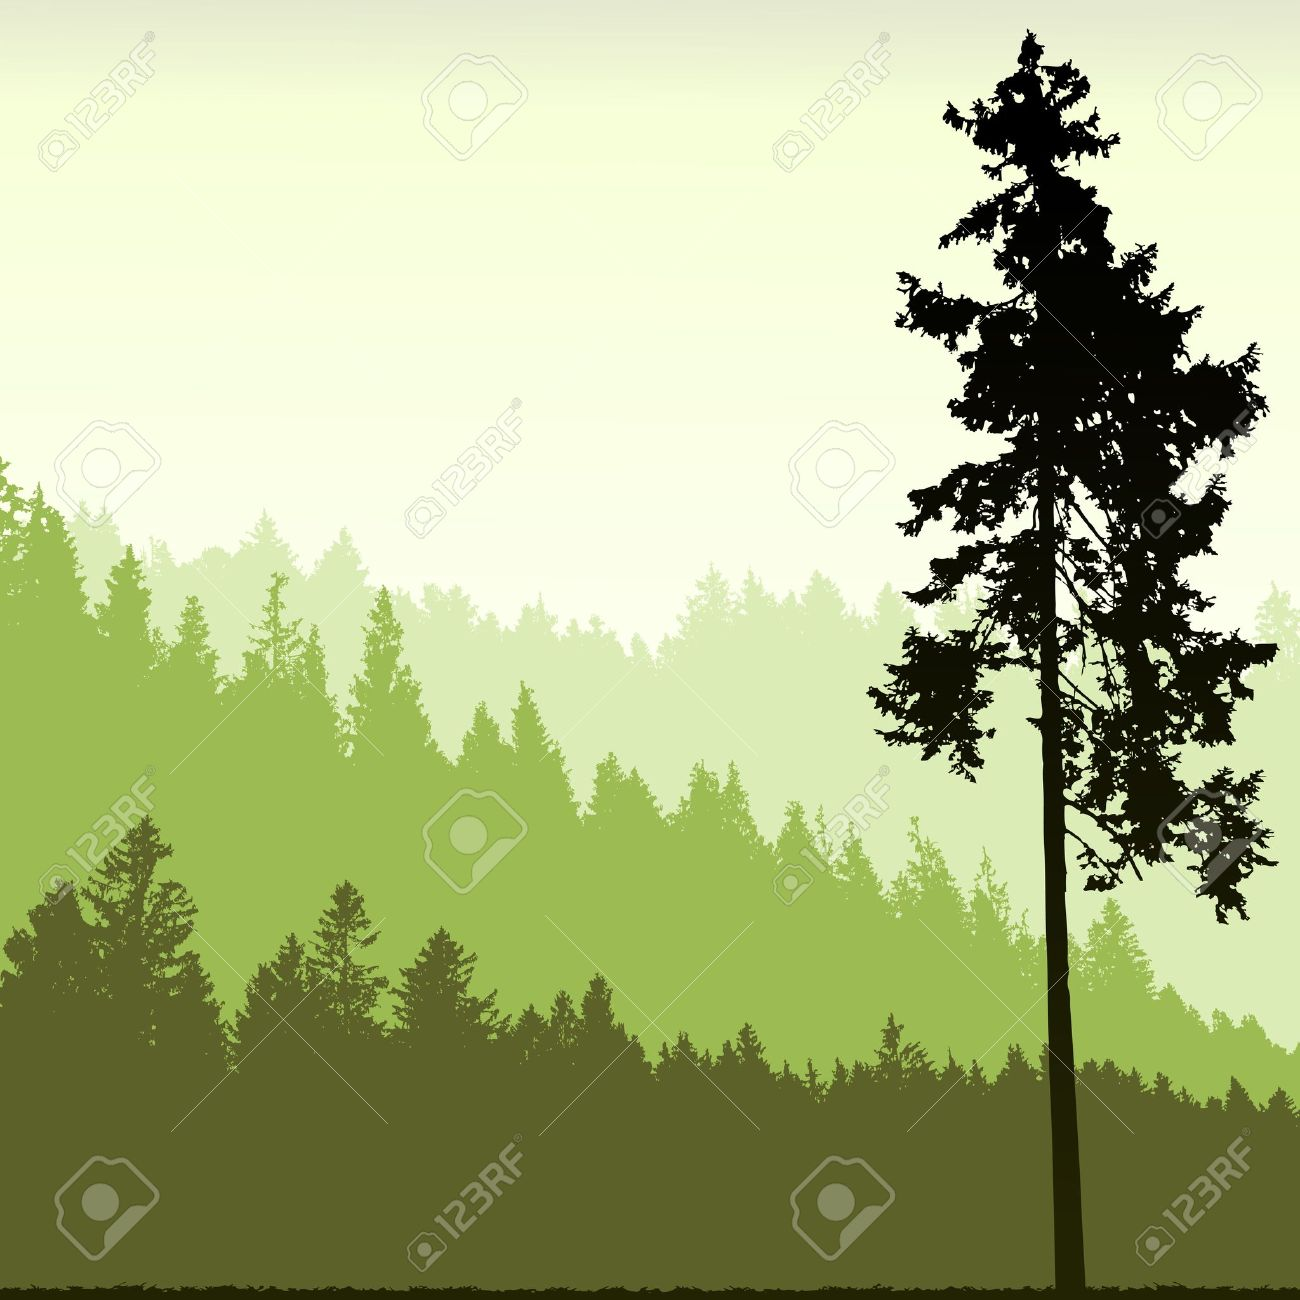 Pine tree landscaping background clipart.